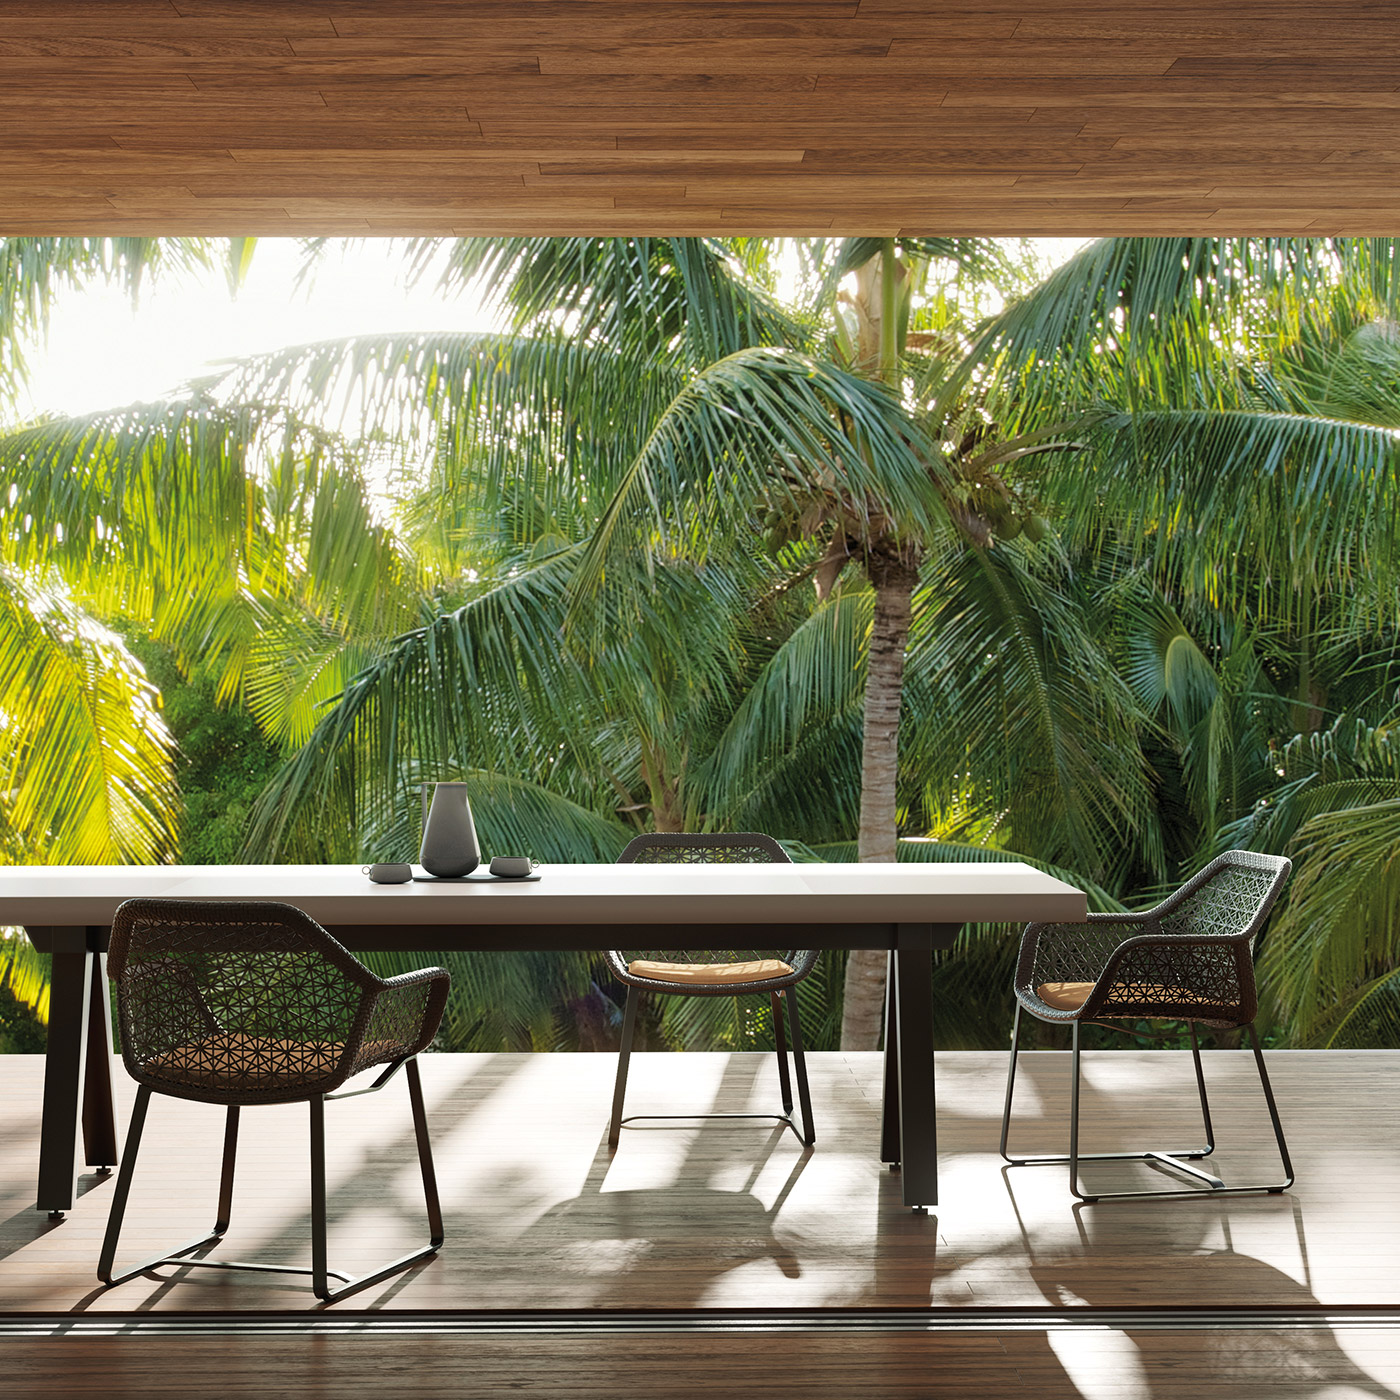 Maia outdoor dining armchair in black mesh with Vieques outdoor dining table in aluminium on a modern teak terrace overlooking palm trees